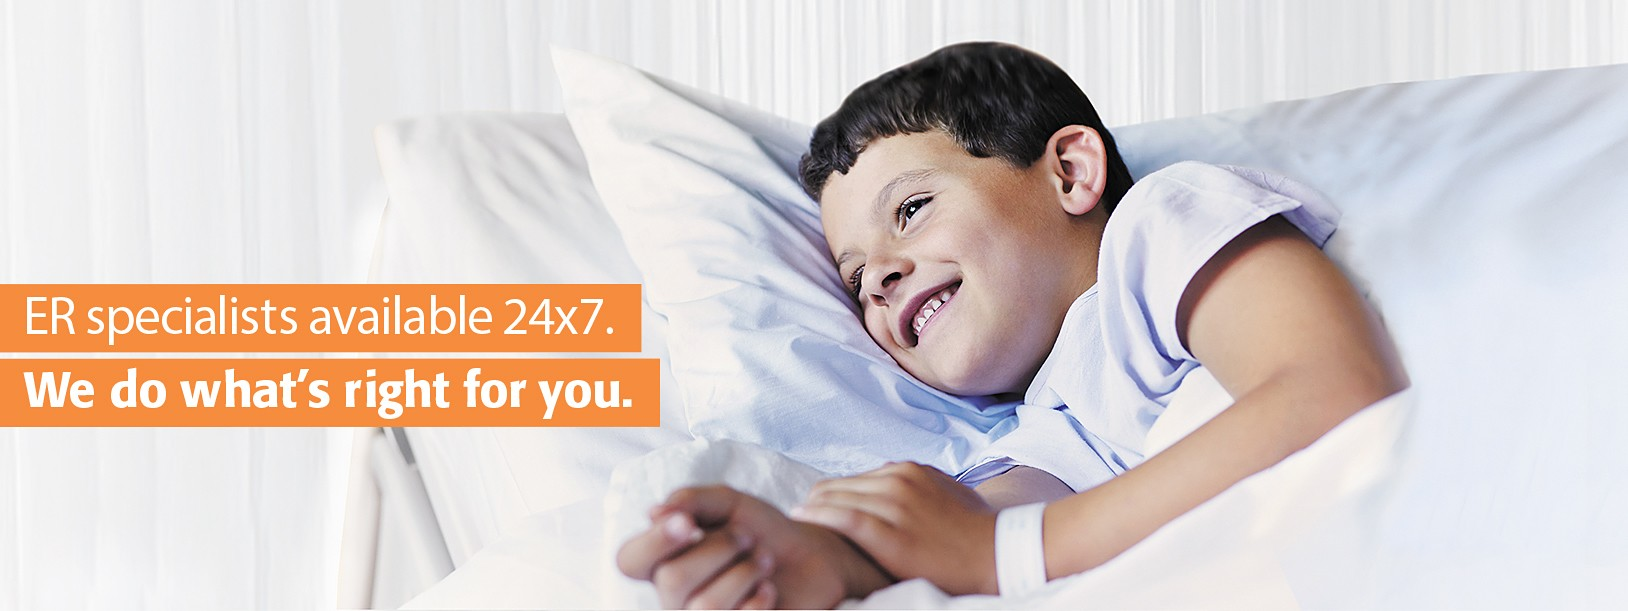 ER specialists available 24x7. We do what's right for you